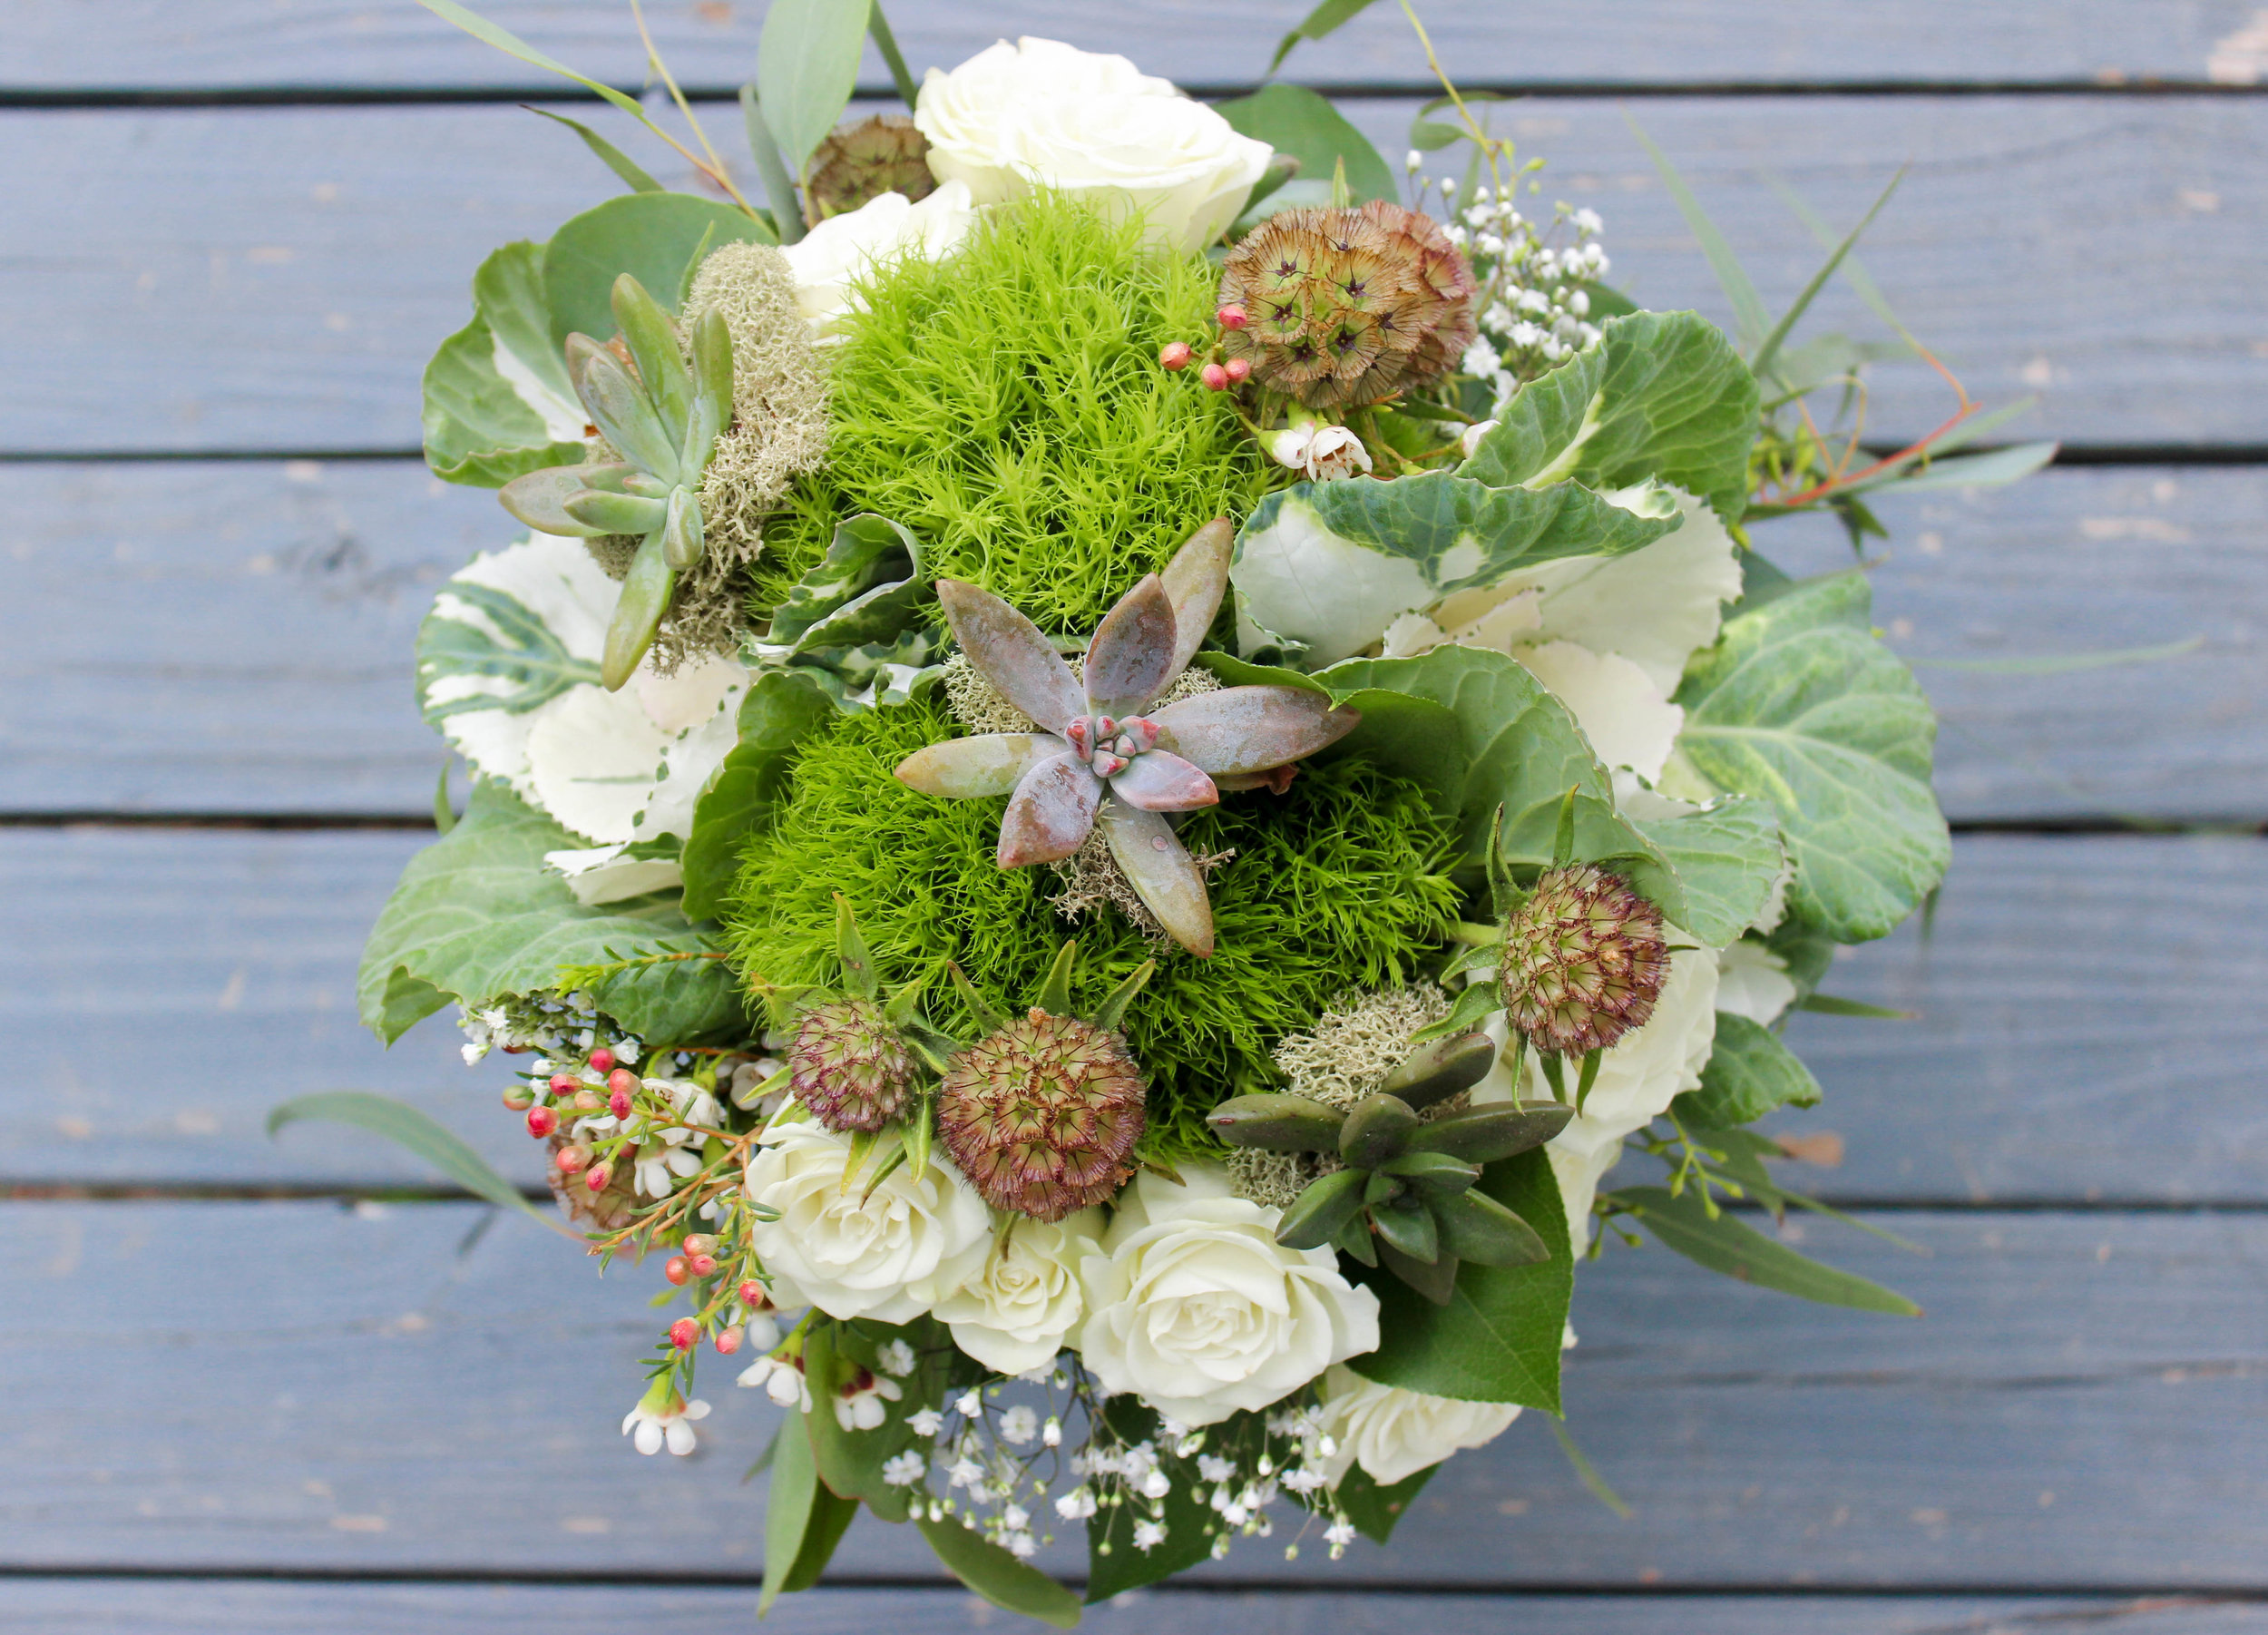 The green trick added that mossy texture to the bridemaids' bouquets along with a little deer moss. These gals look like they were just plucked from the Louisiana swamp!